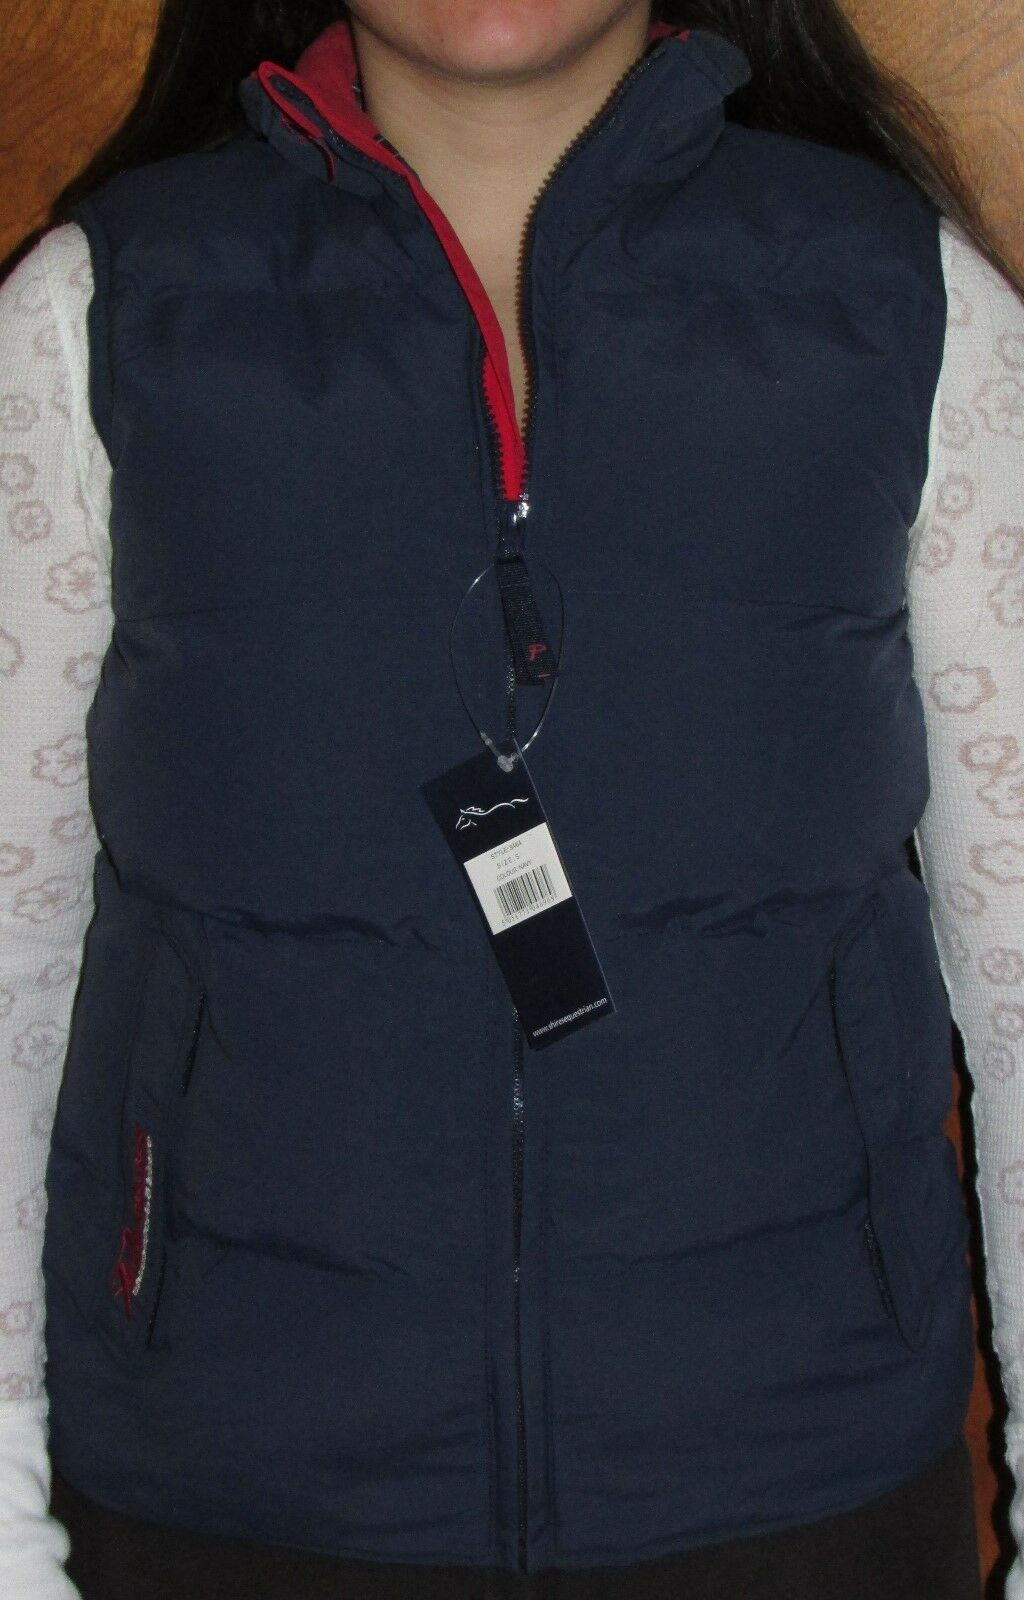 Shires Quilted Insulated Winter Riding Vest Padded Gilet - Navy Red Int. 9464